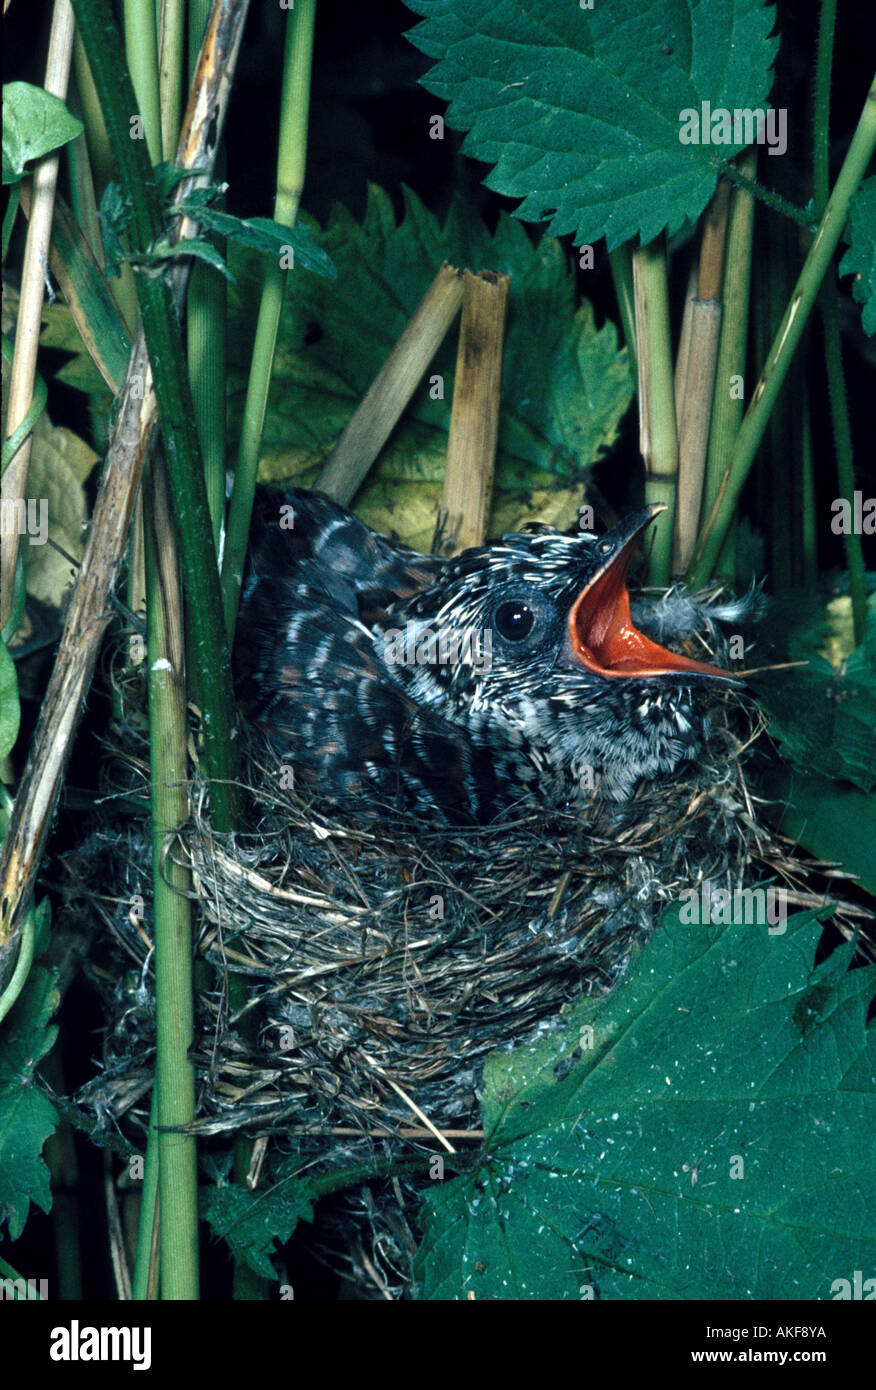 Cuckoo young Cuculus canorus In Reed Warbler s nest Acrocephalus scirpaceus - Stock Image